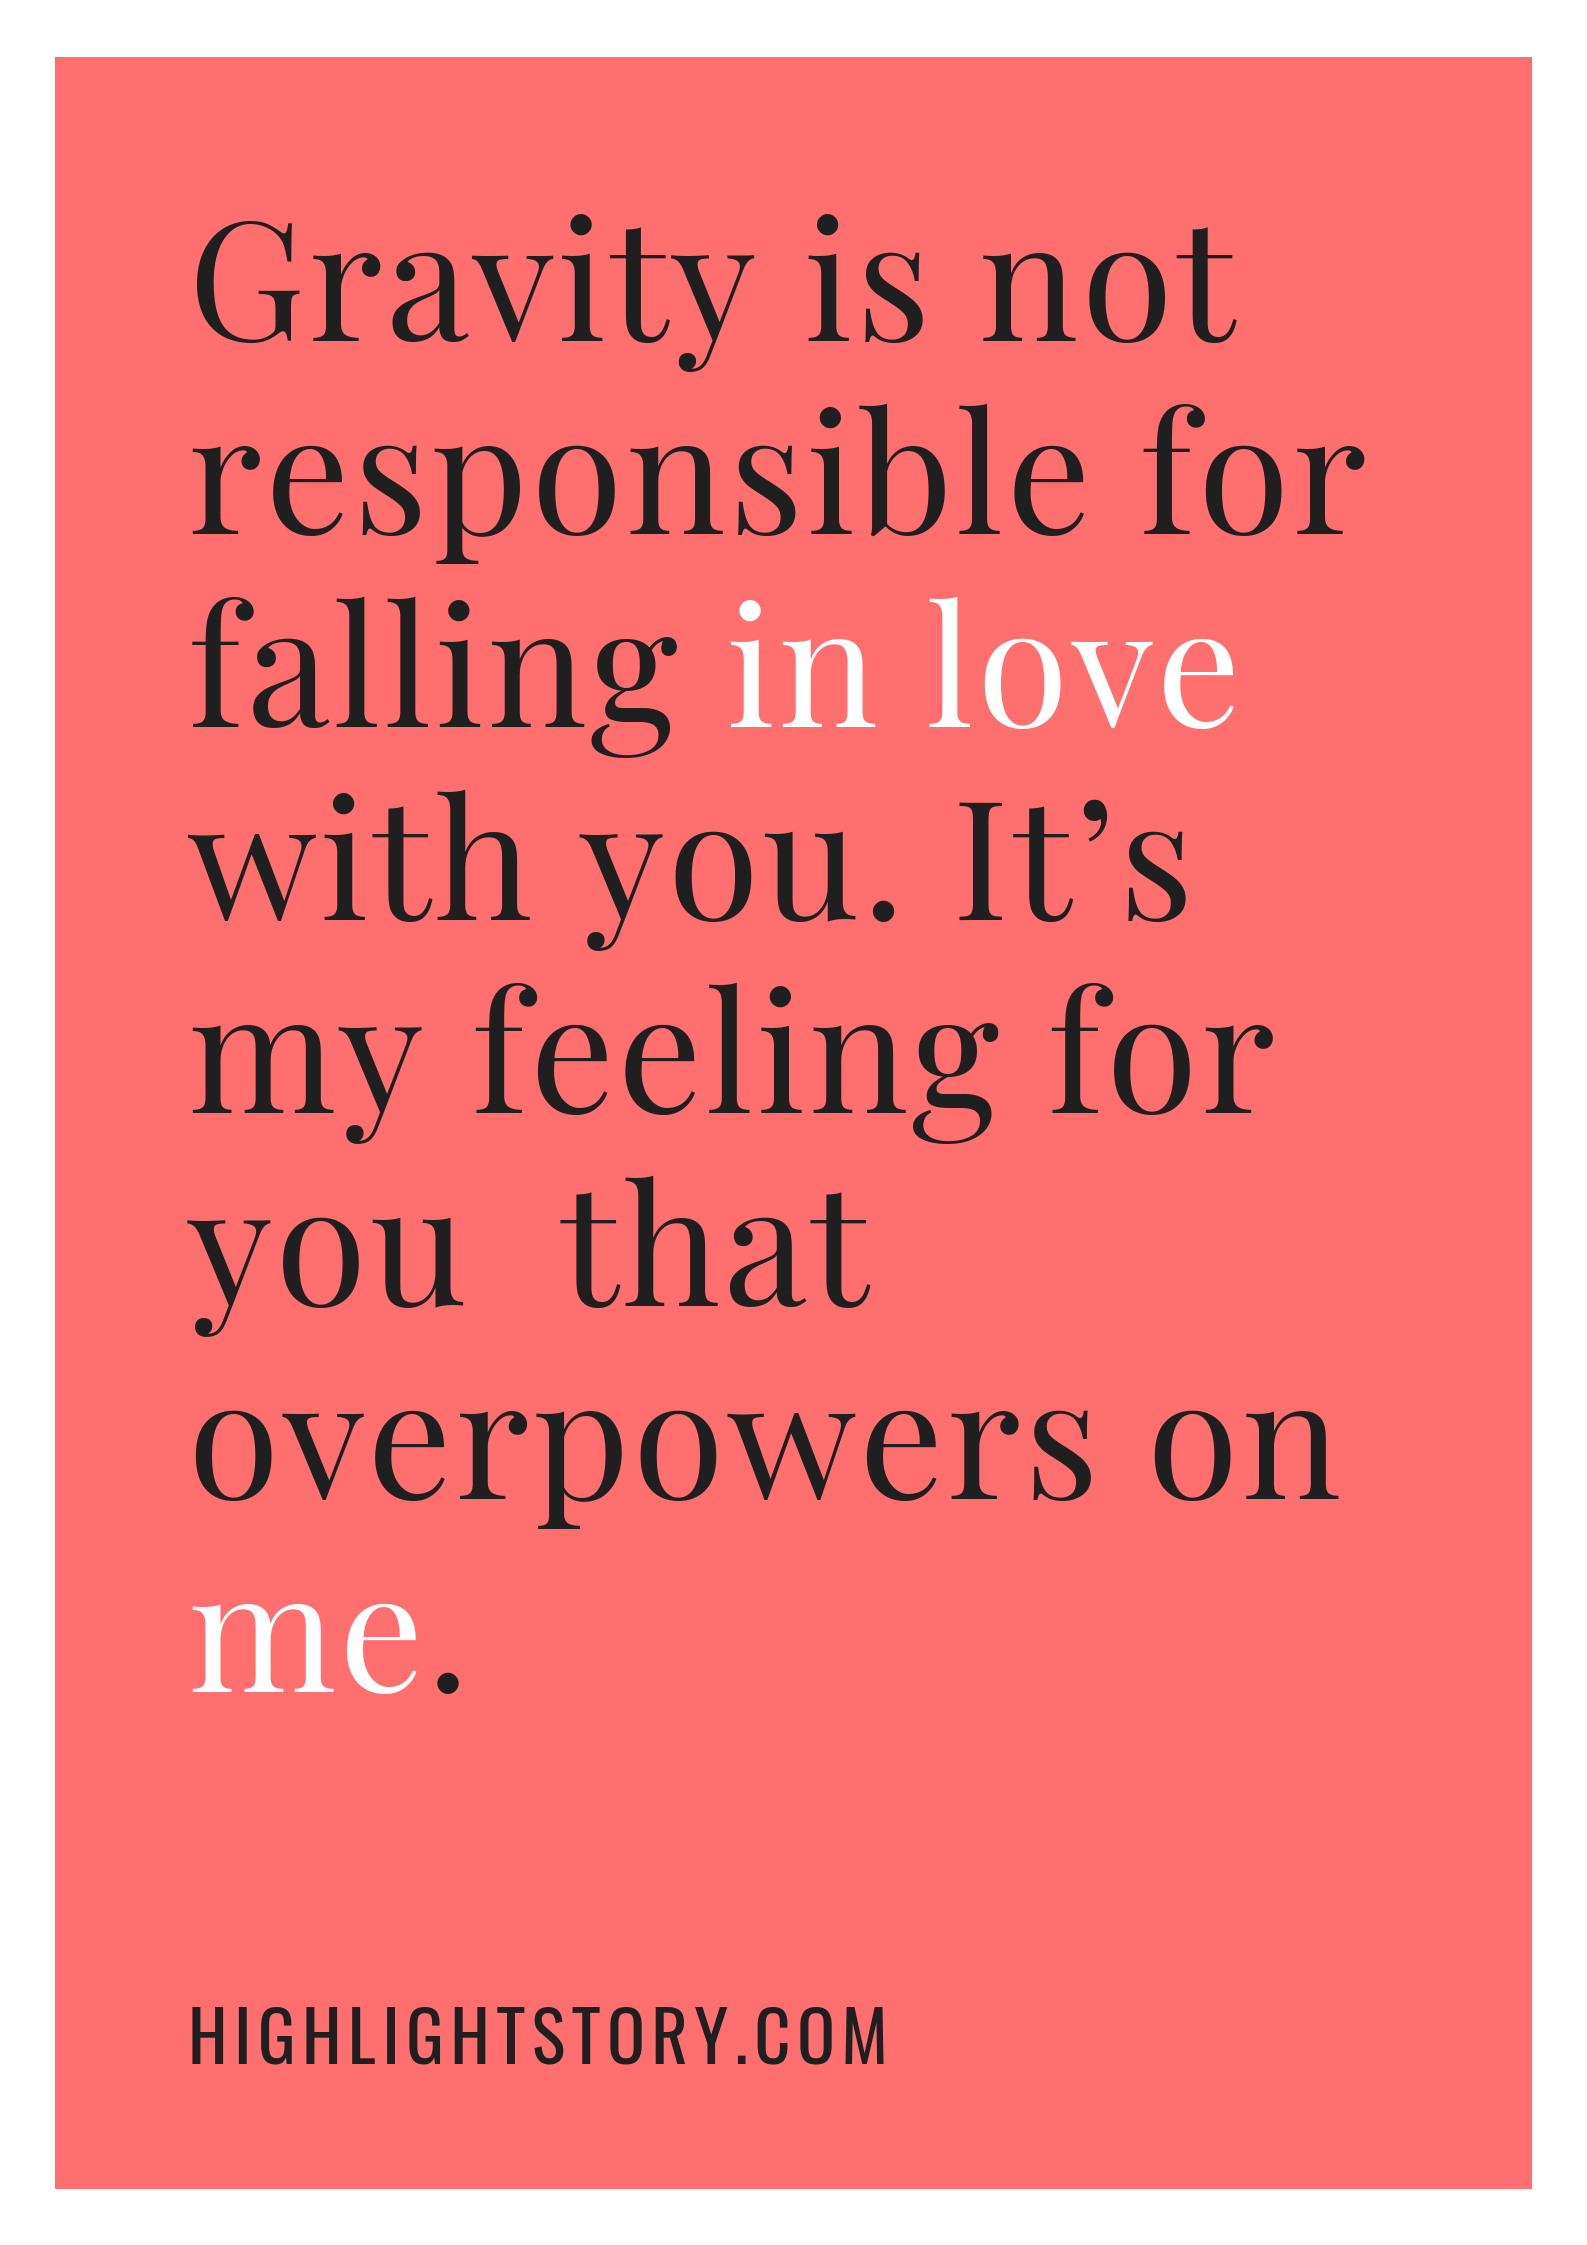 Gravity is not responsible for falling in love with you. It's my feeling for you that overpowers on me.